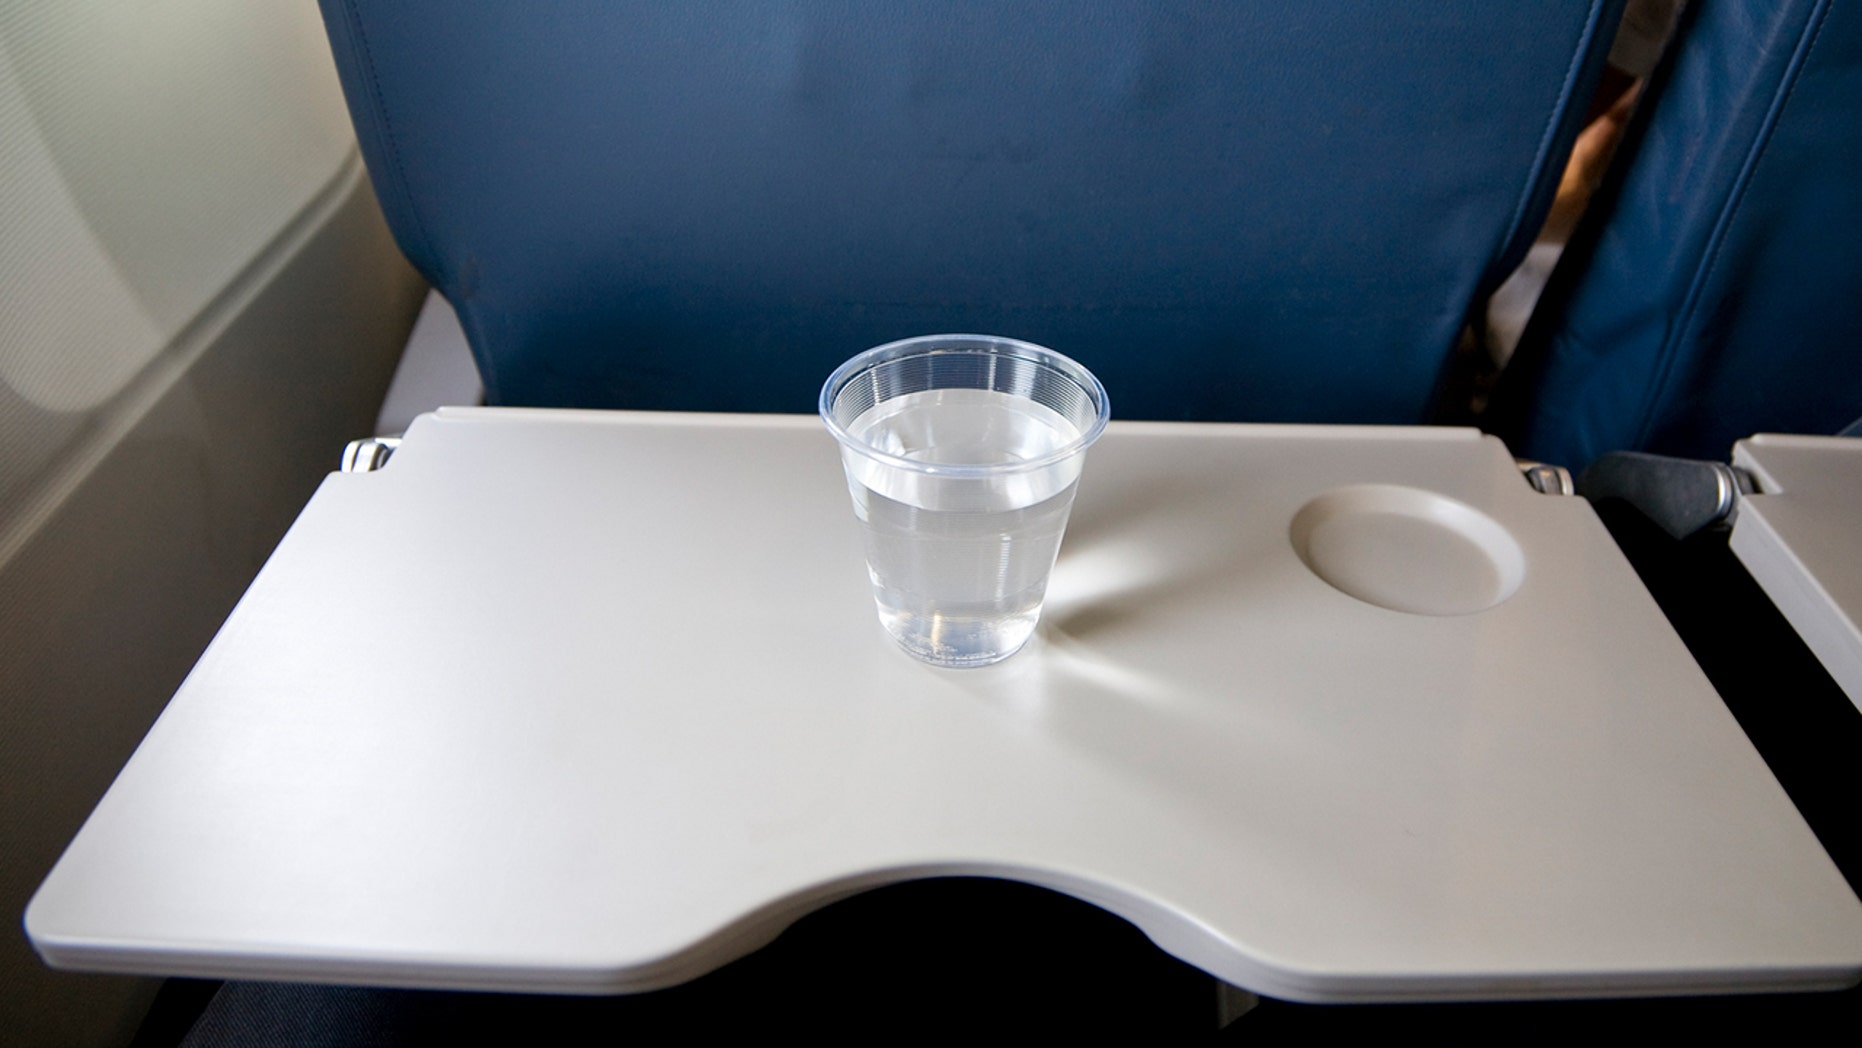 The Hunter College survey that polled 11 airlines — including JetBlue and Delta — about the nutritional value of their in-flight snacks also asked about procedures surrounding the water tanks.